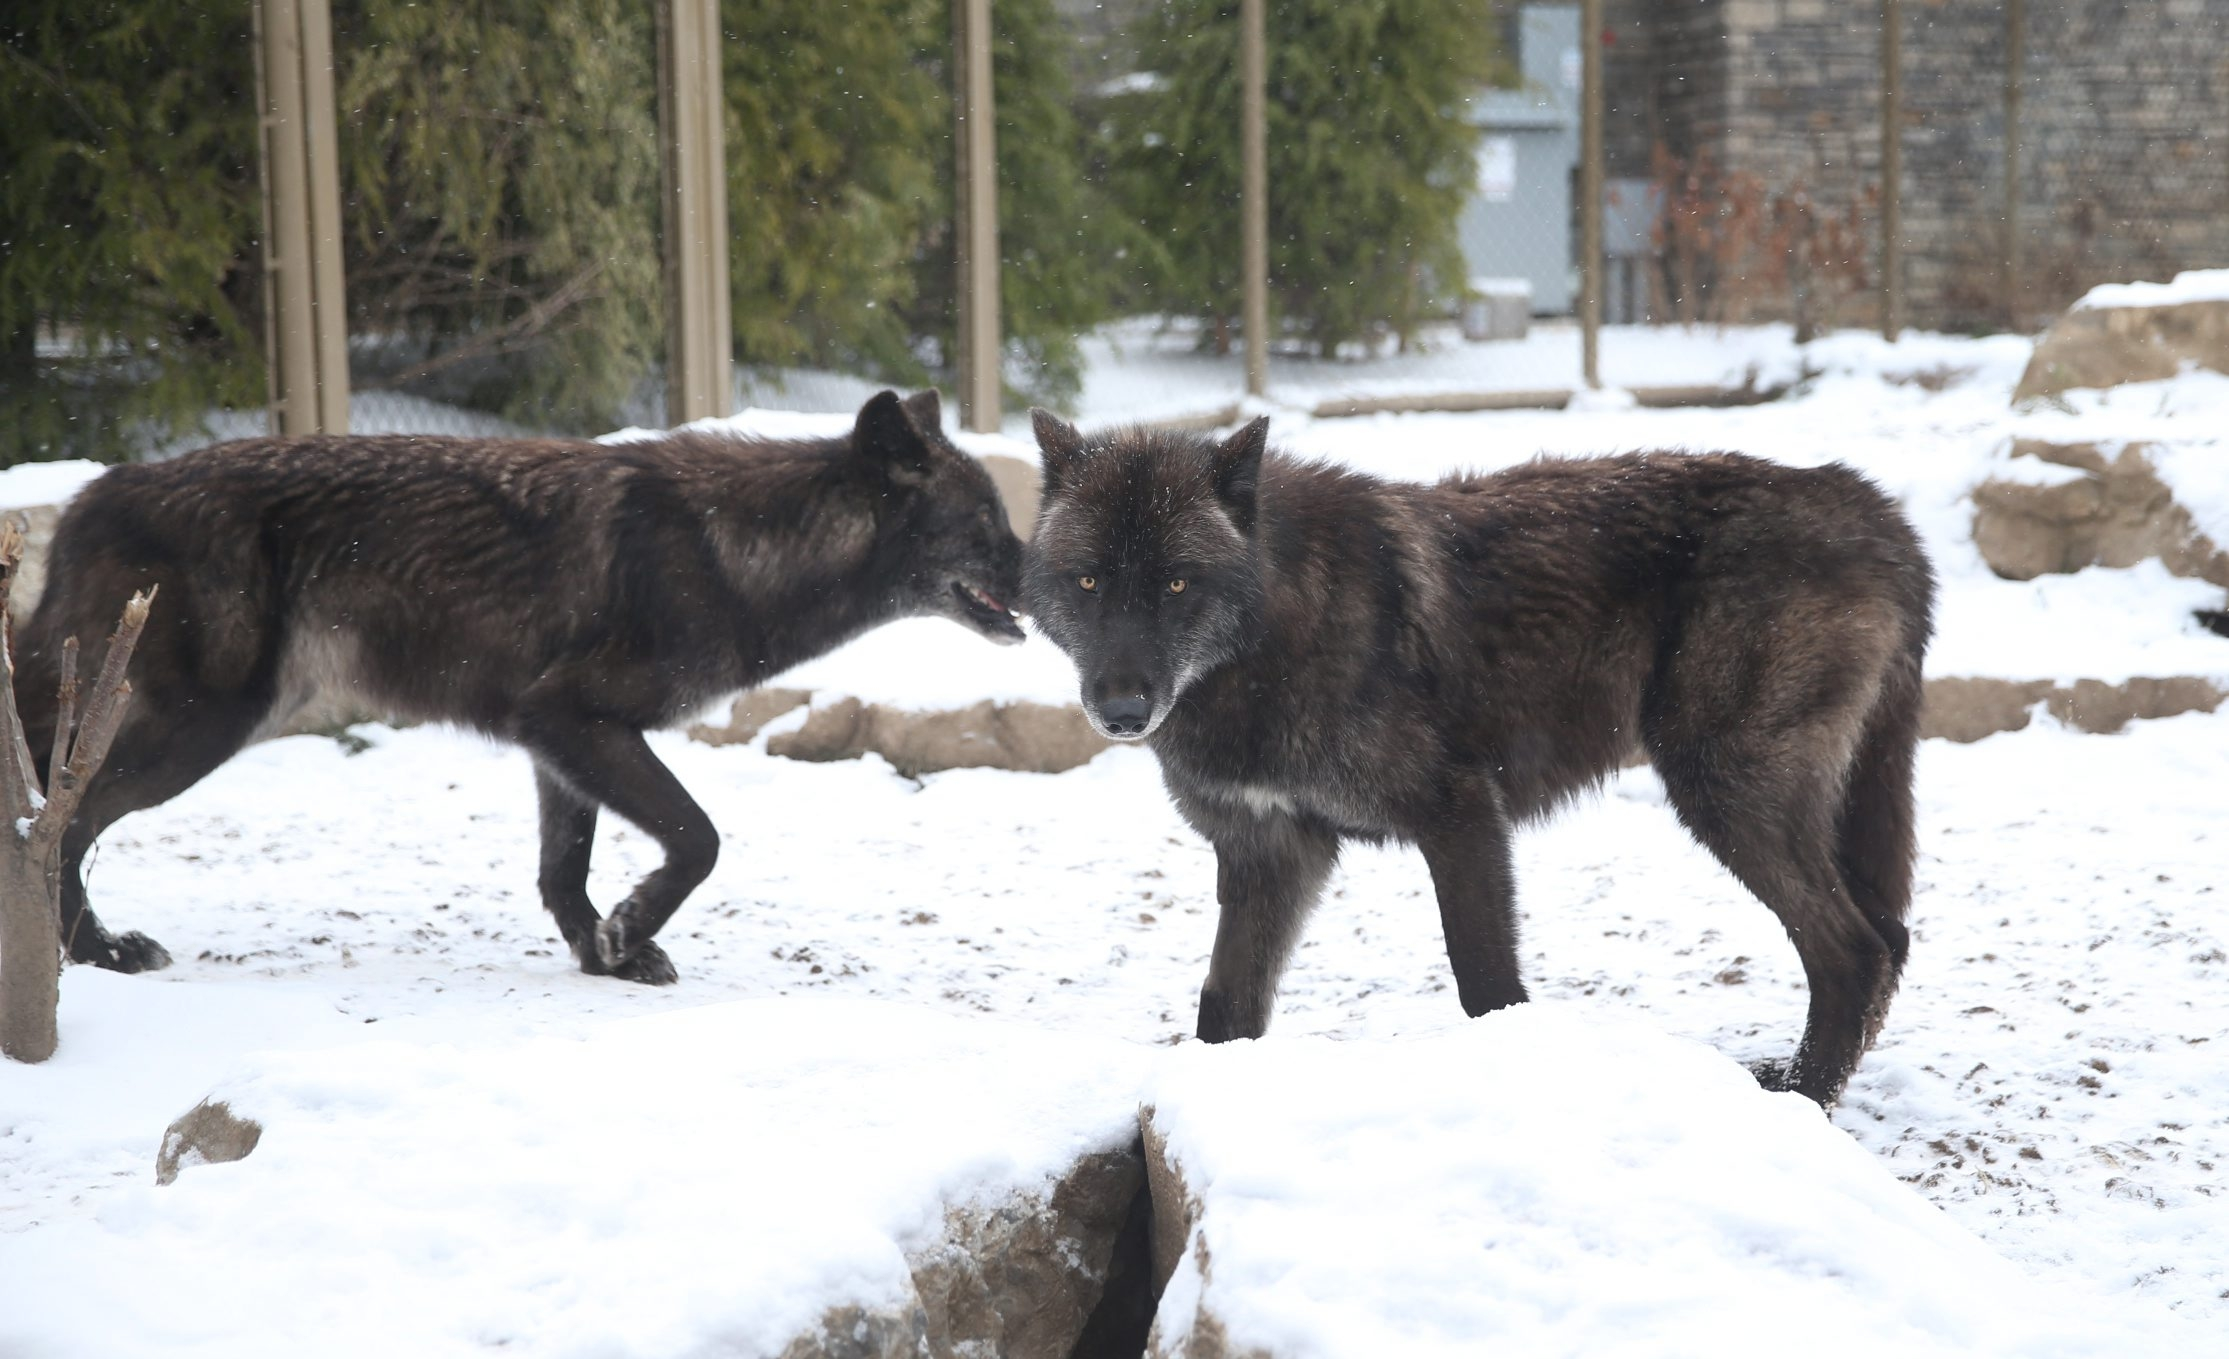 The two gray wolves pace in their home in the Buffalo Zoo's Arctic Edge as they near feeding time. (Sharon Cantillon/News file photo)